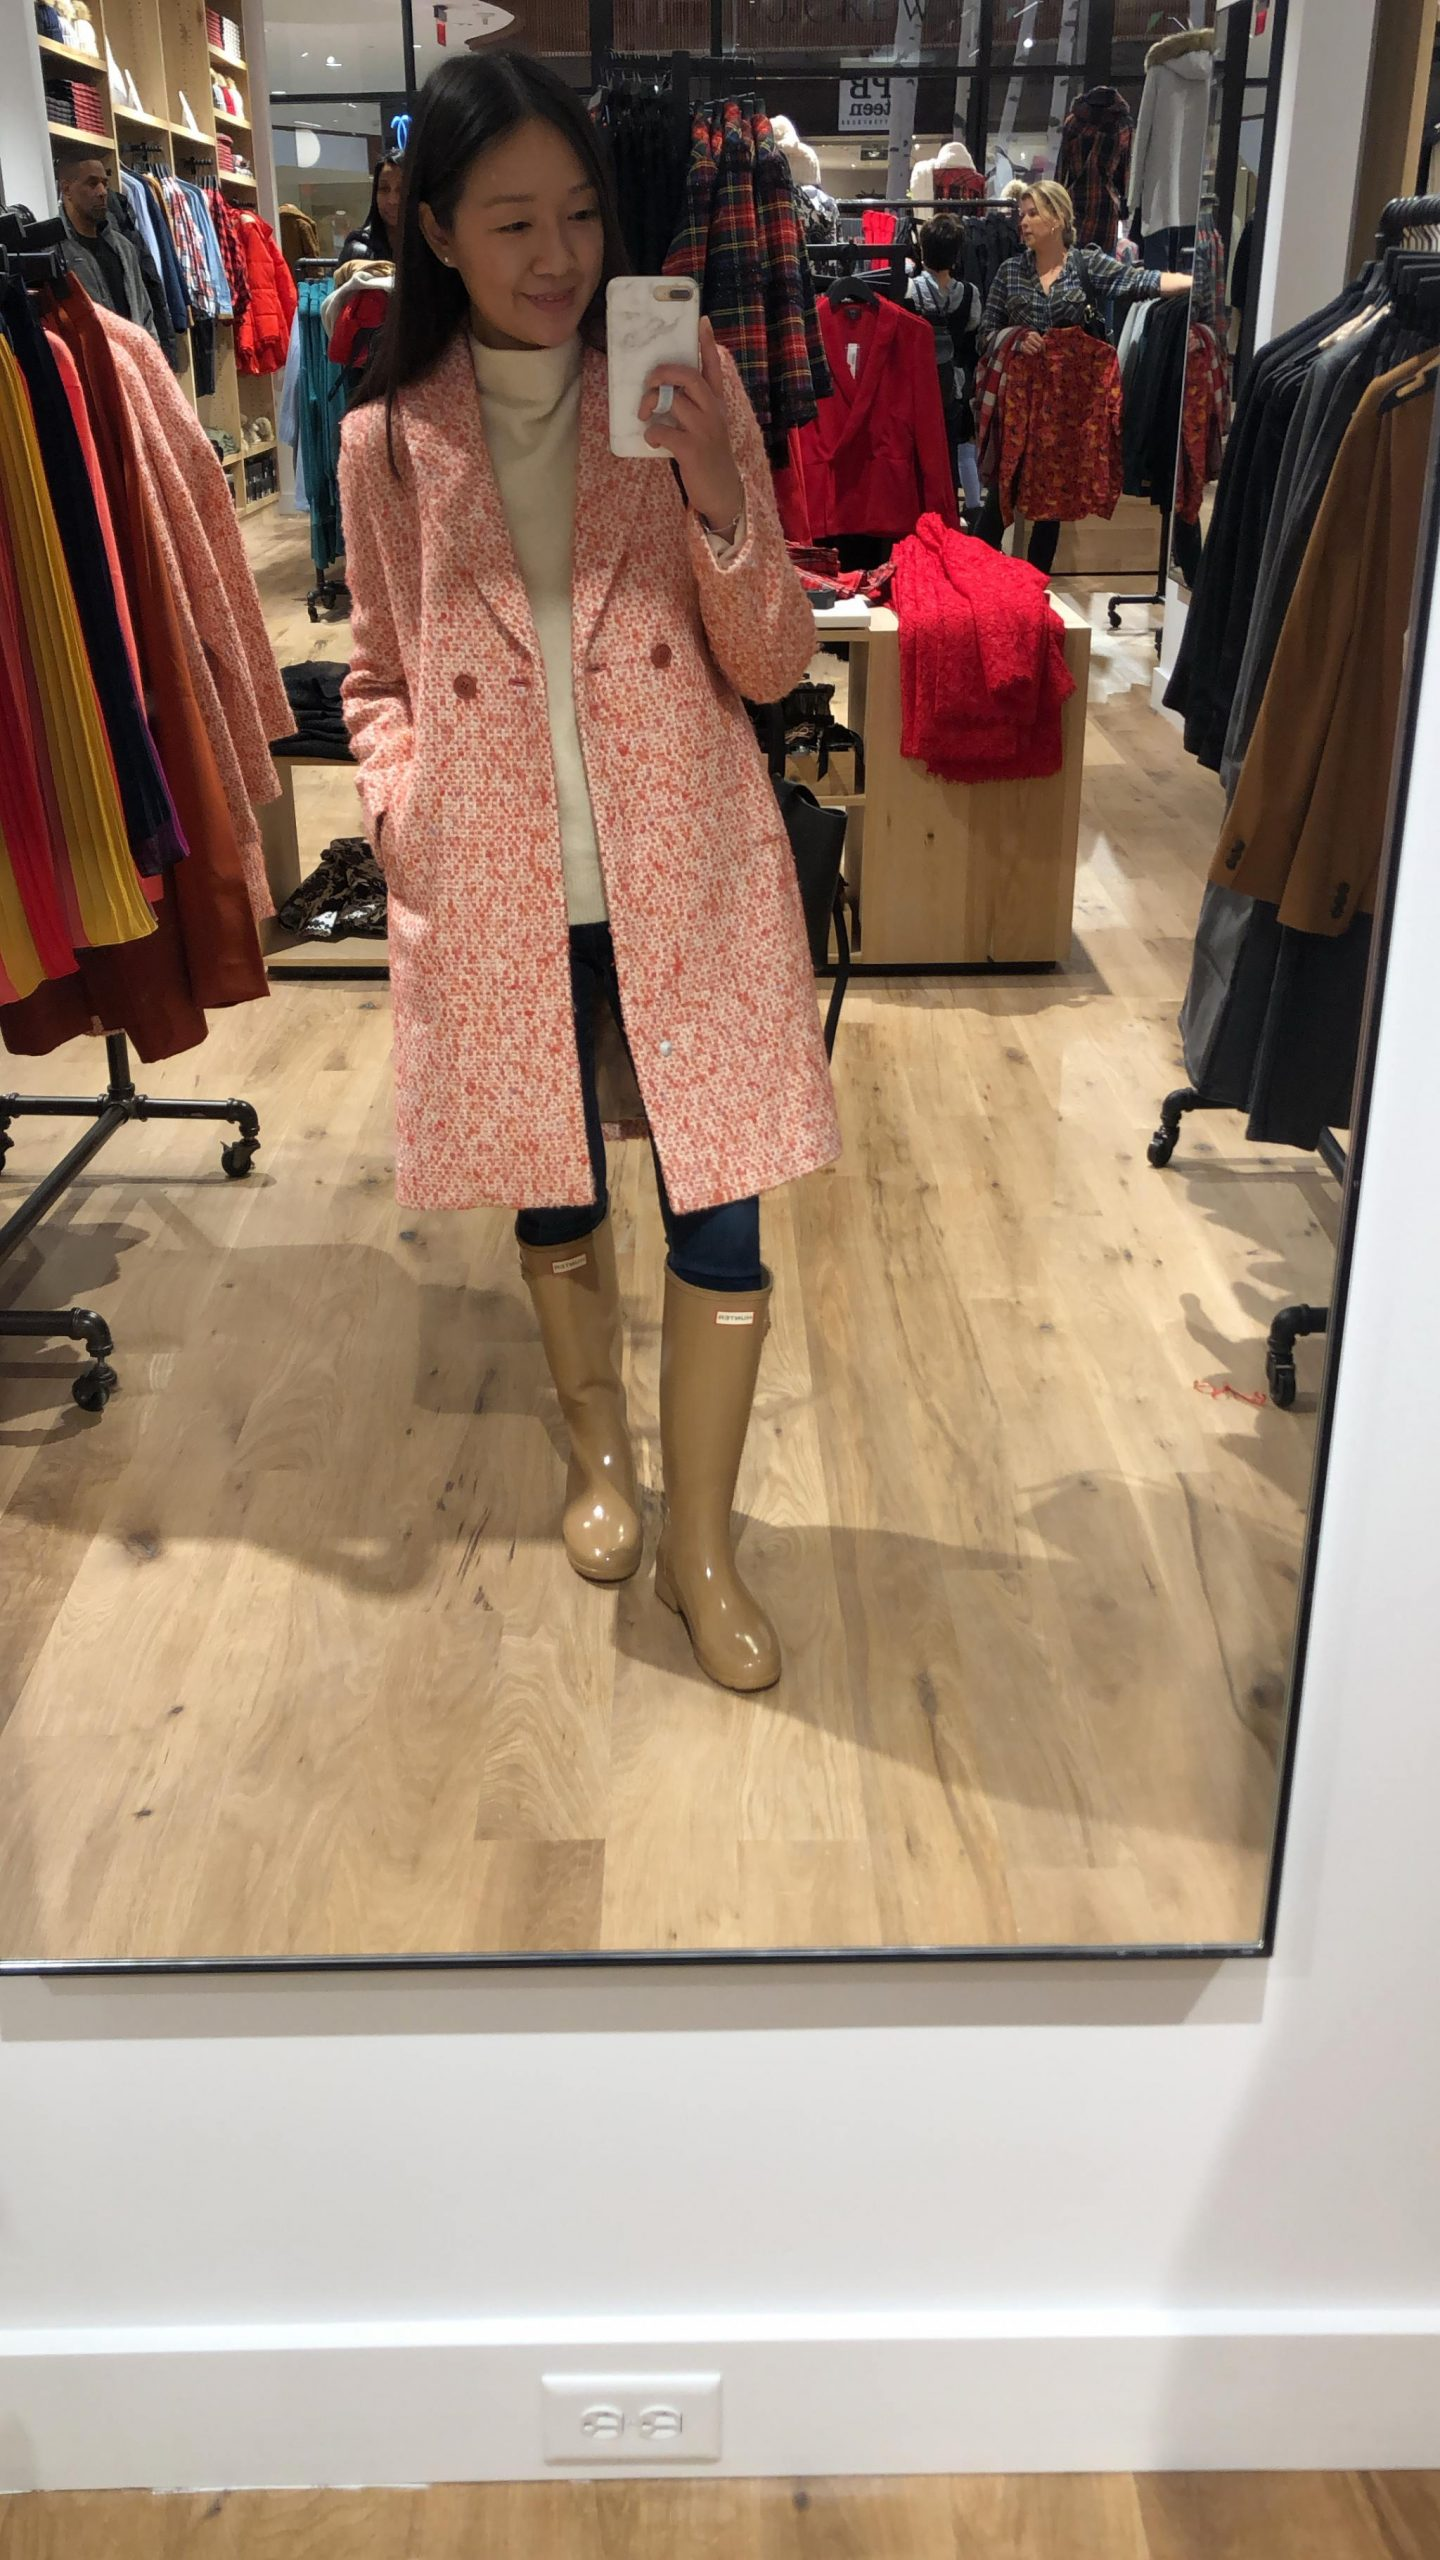 J.Crew Daphne Topcoat in Italian Tweed, size 00 regular